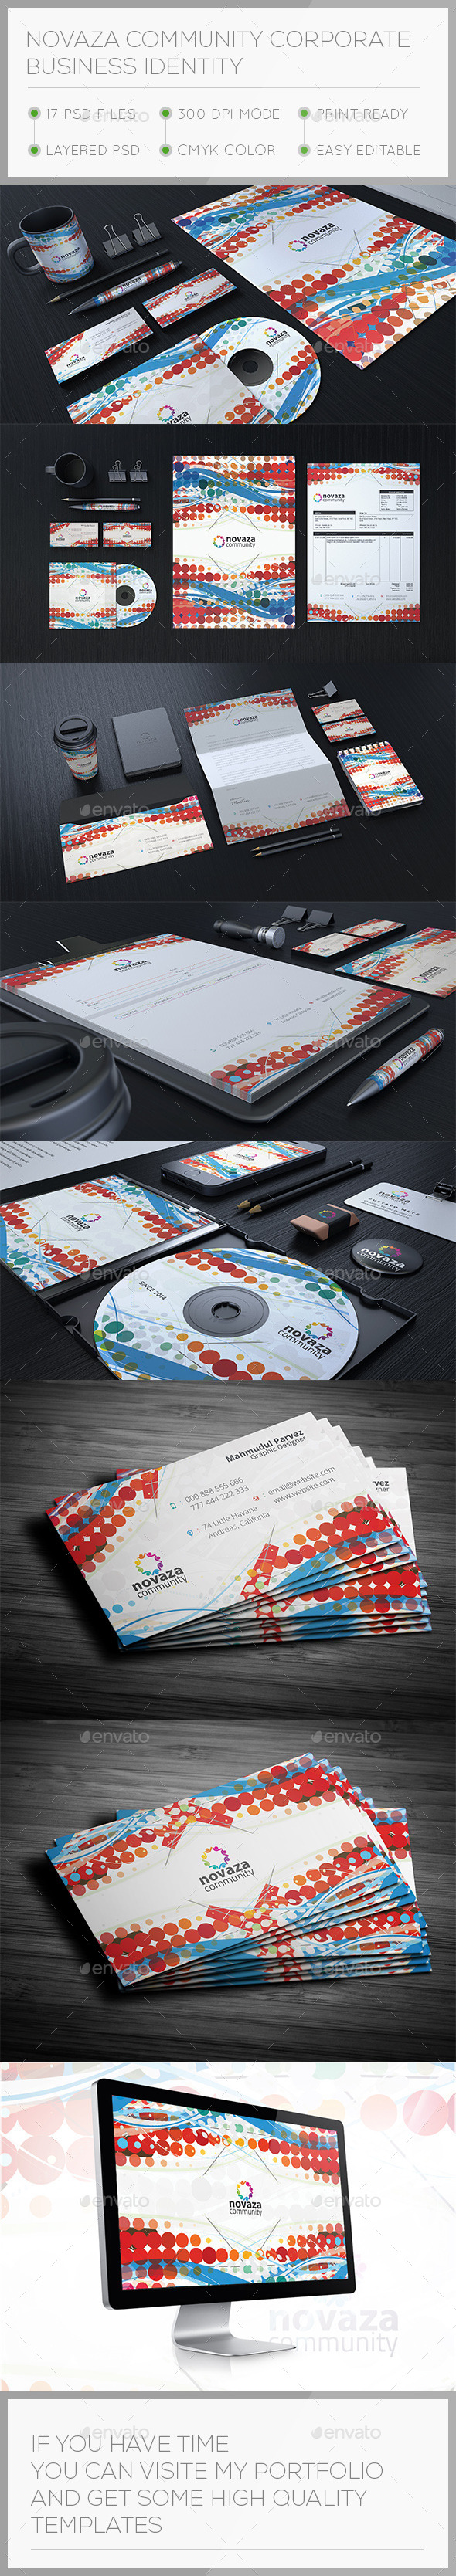 Novaza Corporate Stationary Identity - Stationery Print Templates